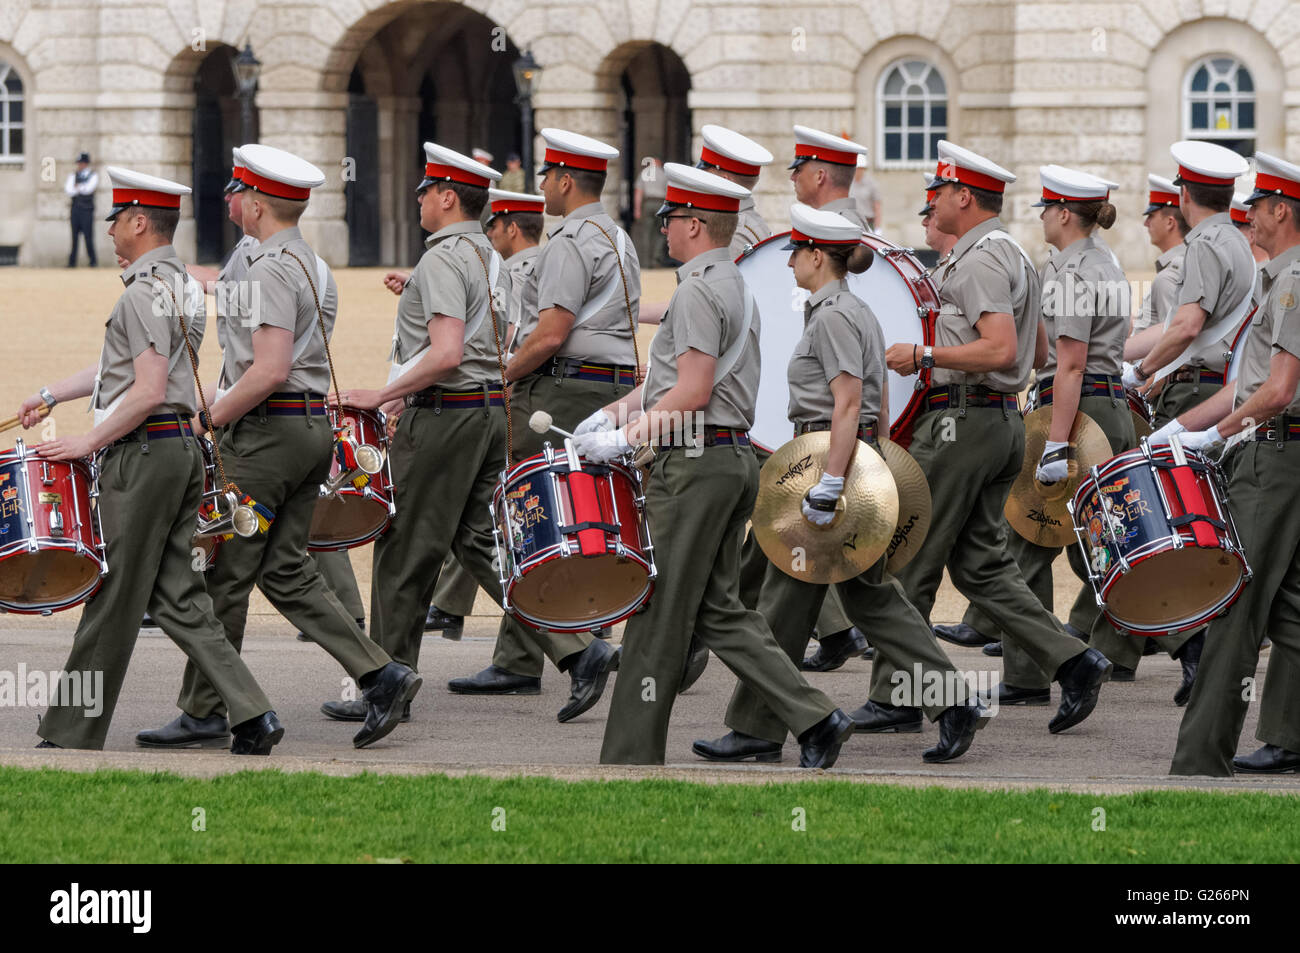 in foot stock bands guards mall at massed photos marching royal london images photo musicians of the along